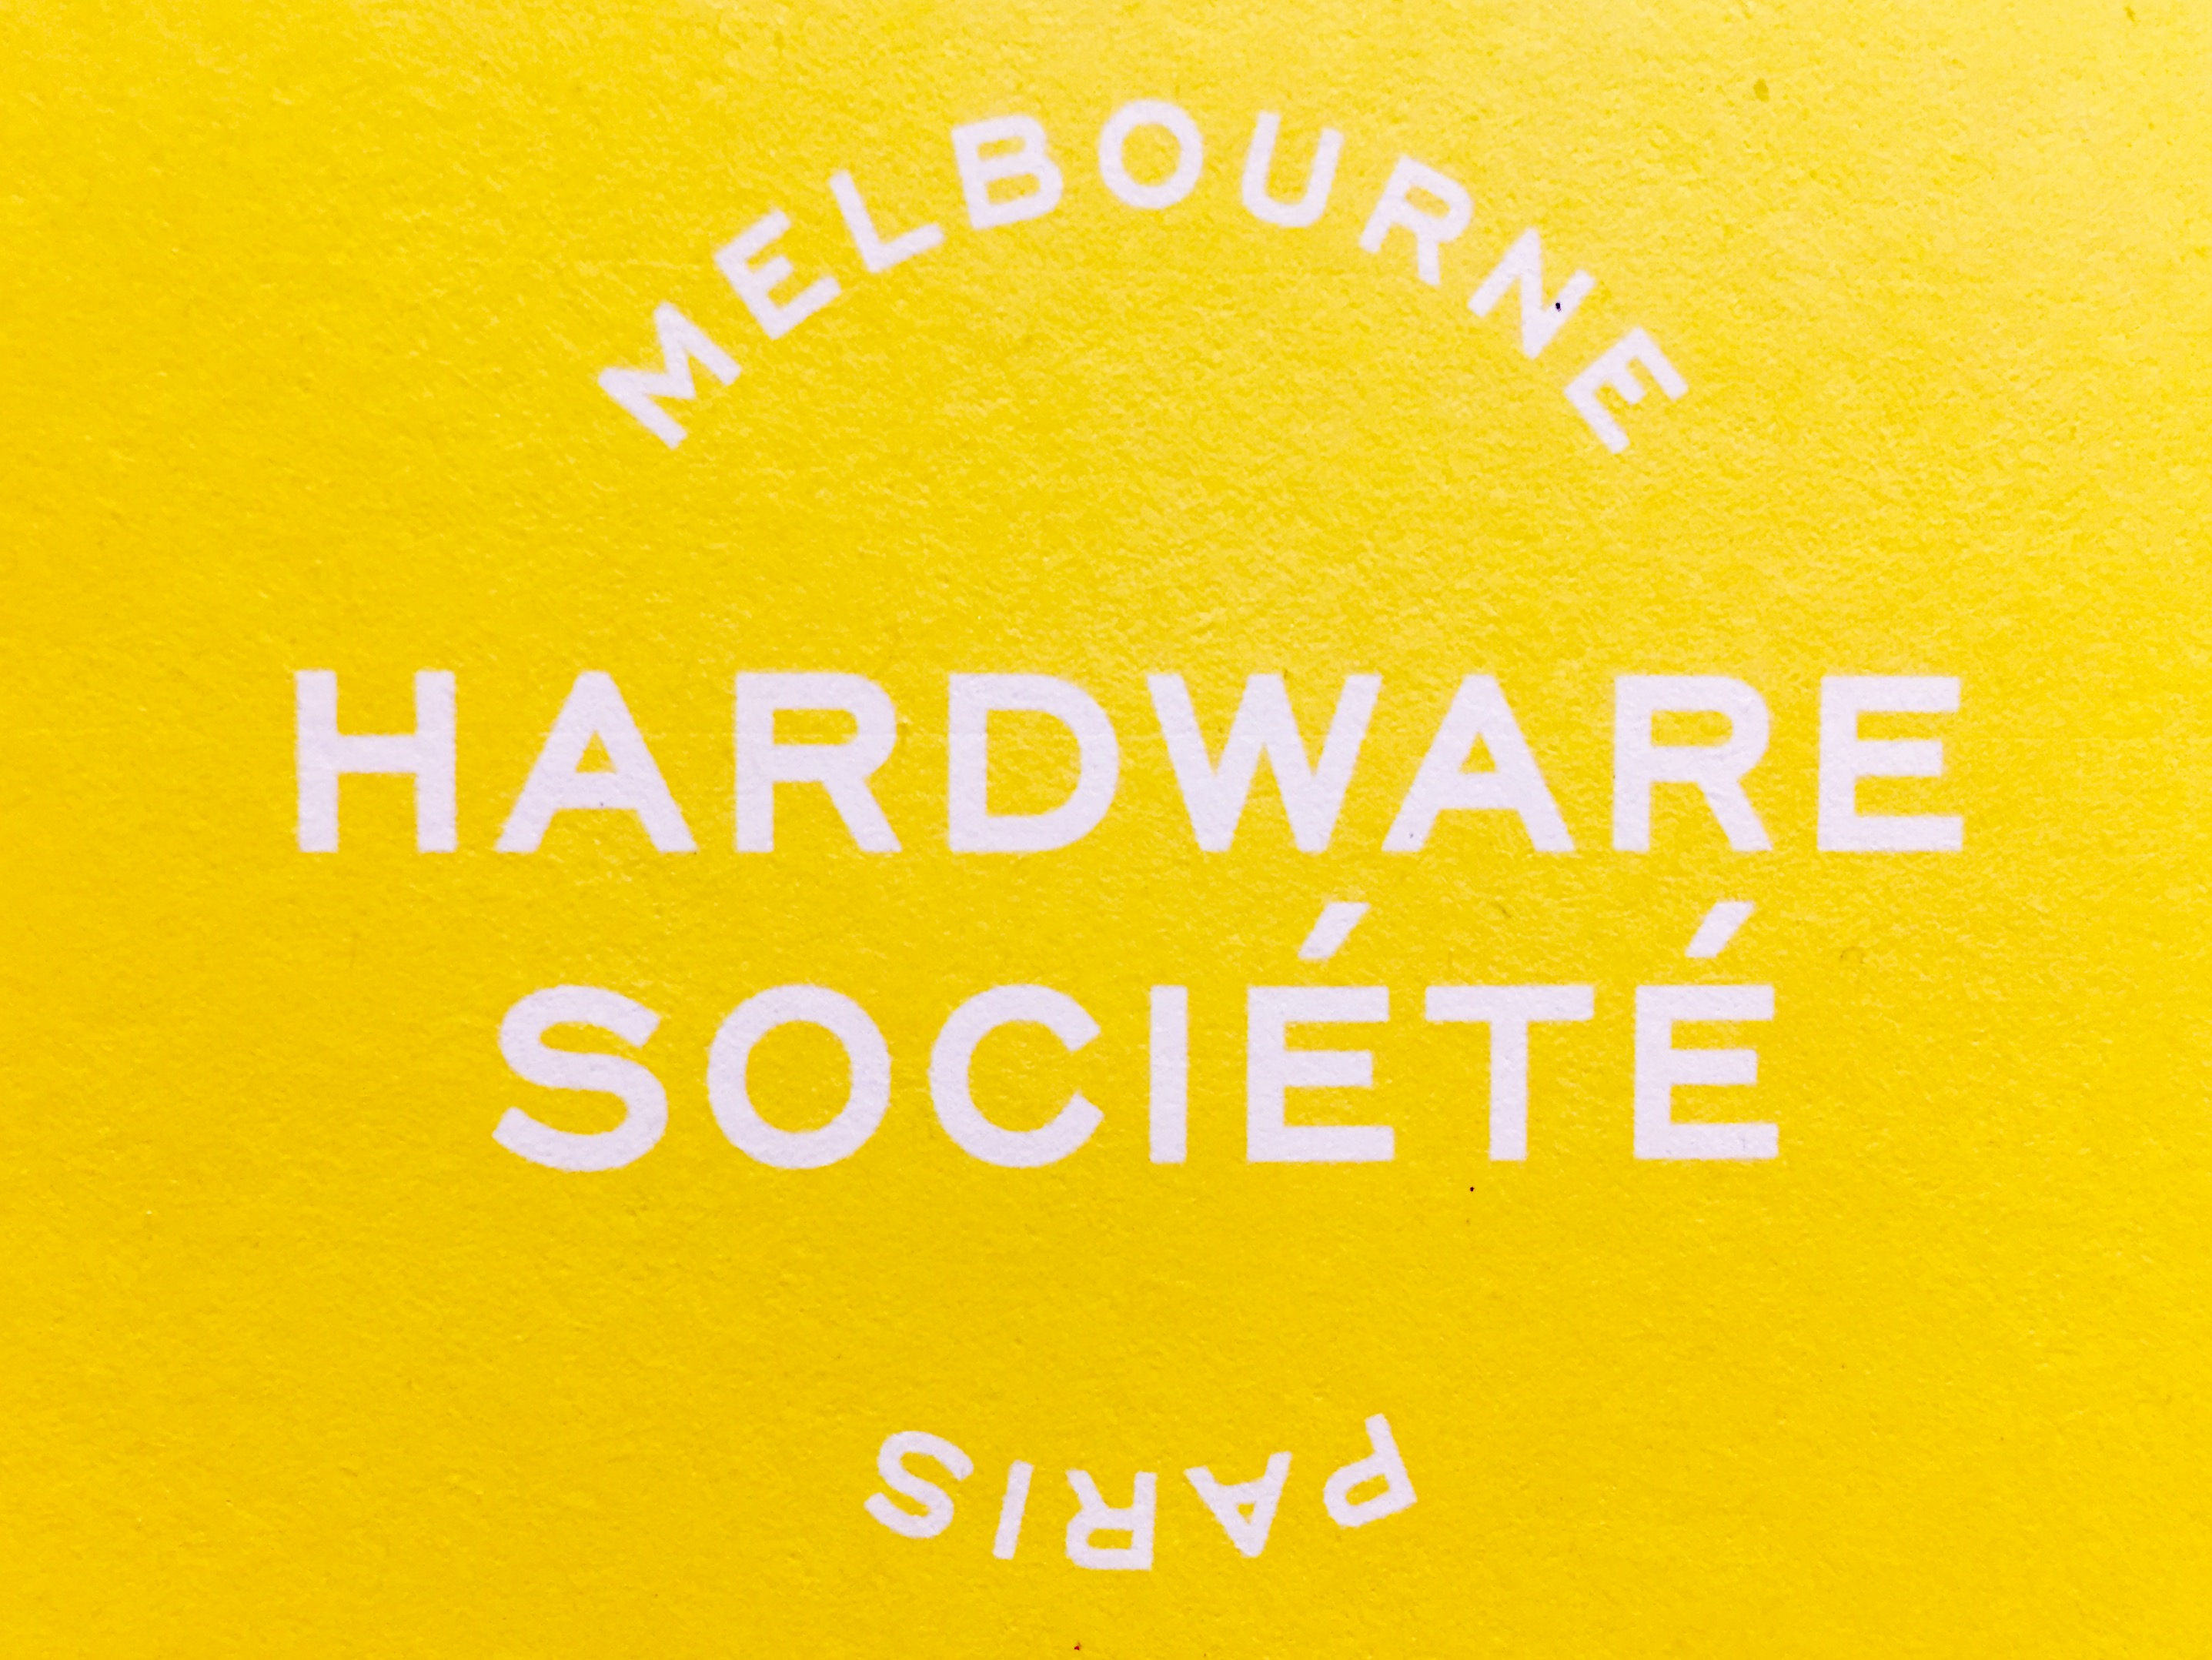 The Hardware Societe